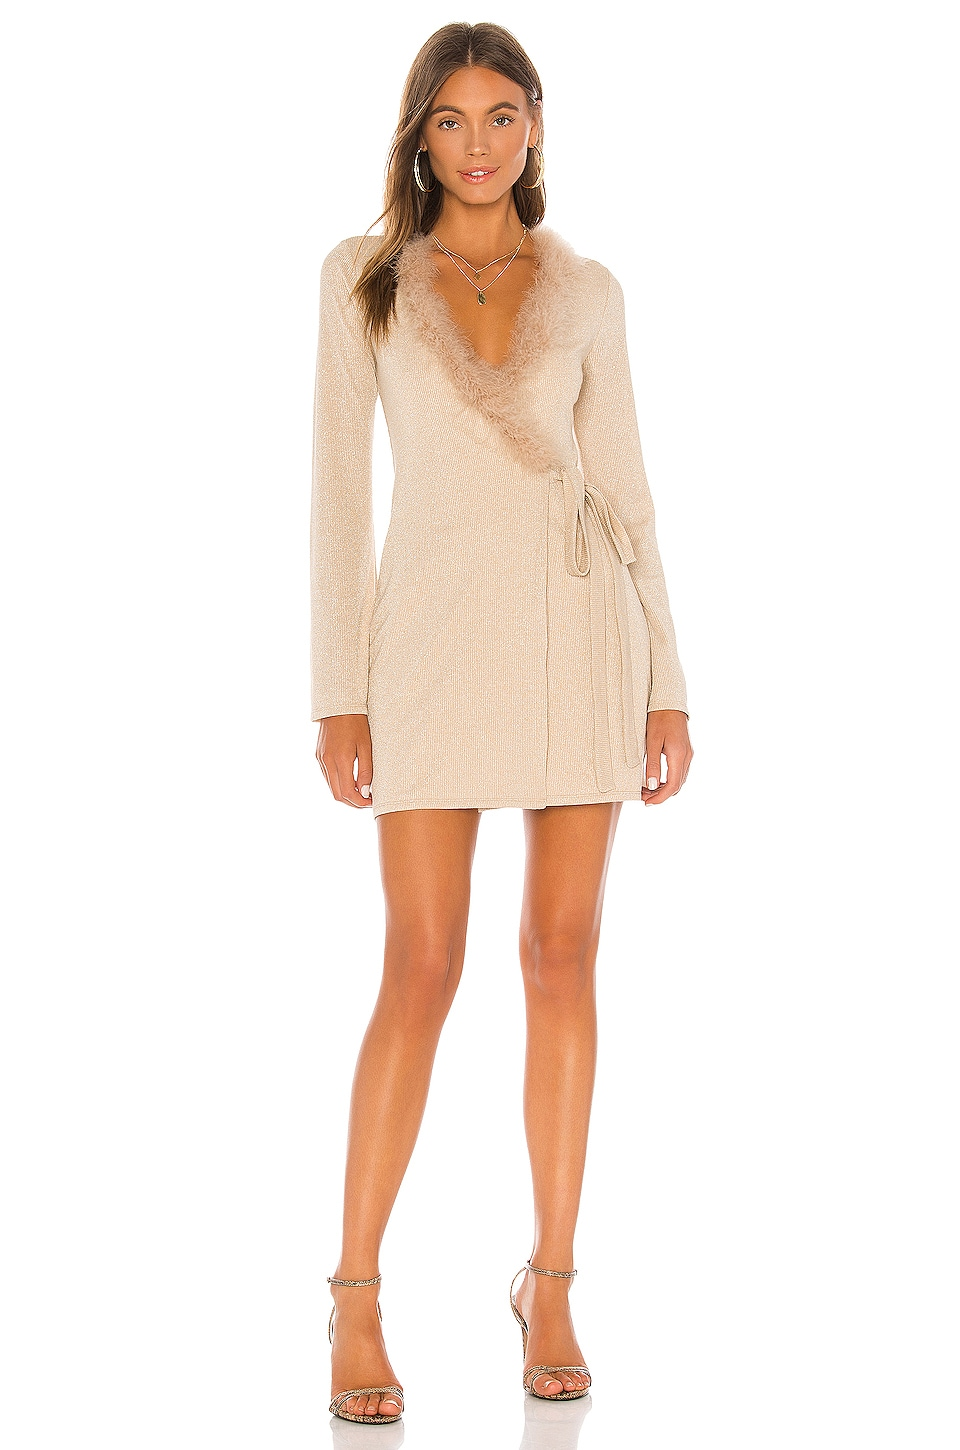 Lovers + Friends Florence Mini Dress in Nude Shimmer